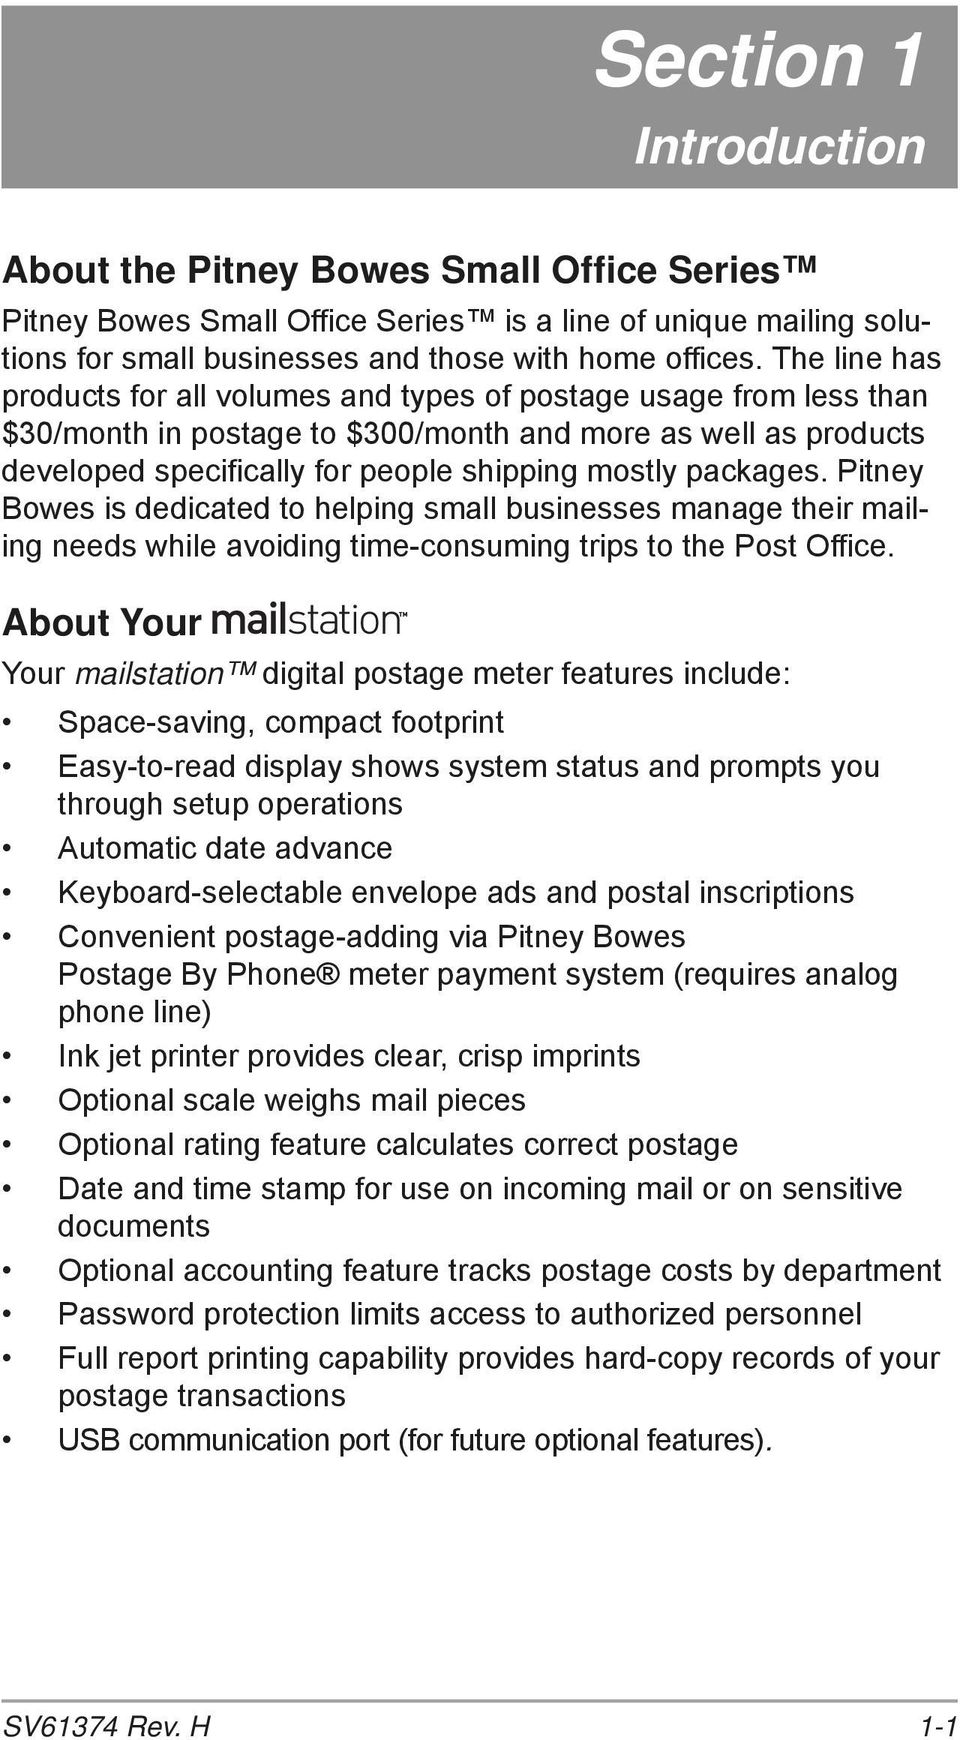 packages. Pitney Bowes is dedicated to helping small businesses manage their mailing needs while avoiding time-consuming trips to the Post Office.